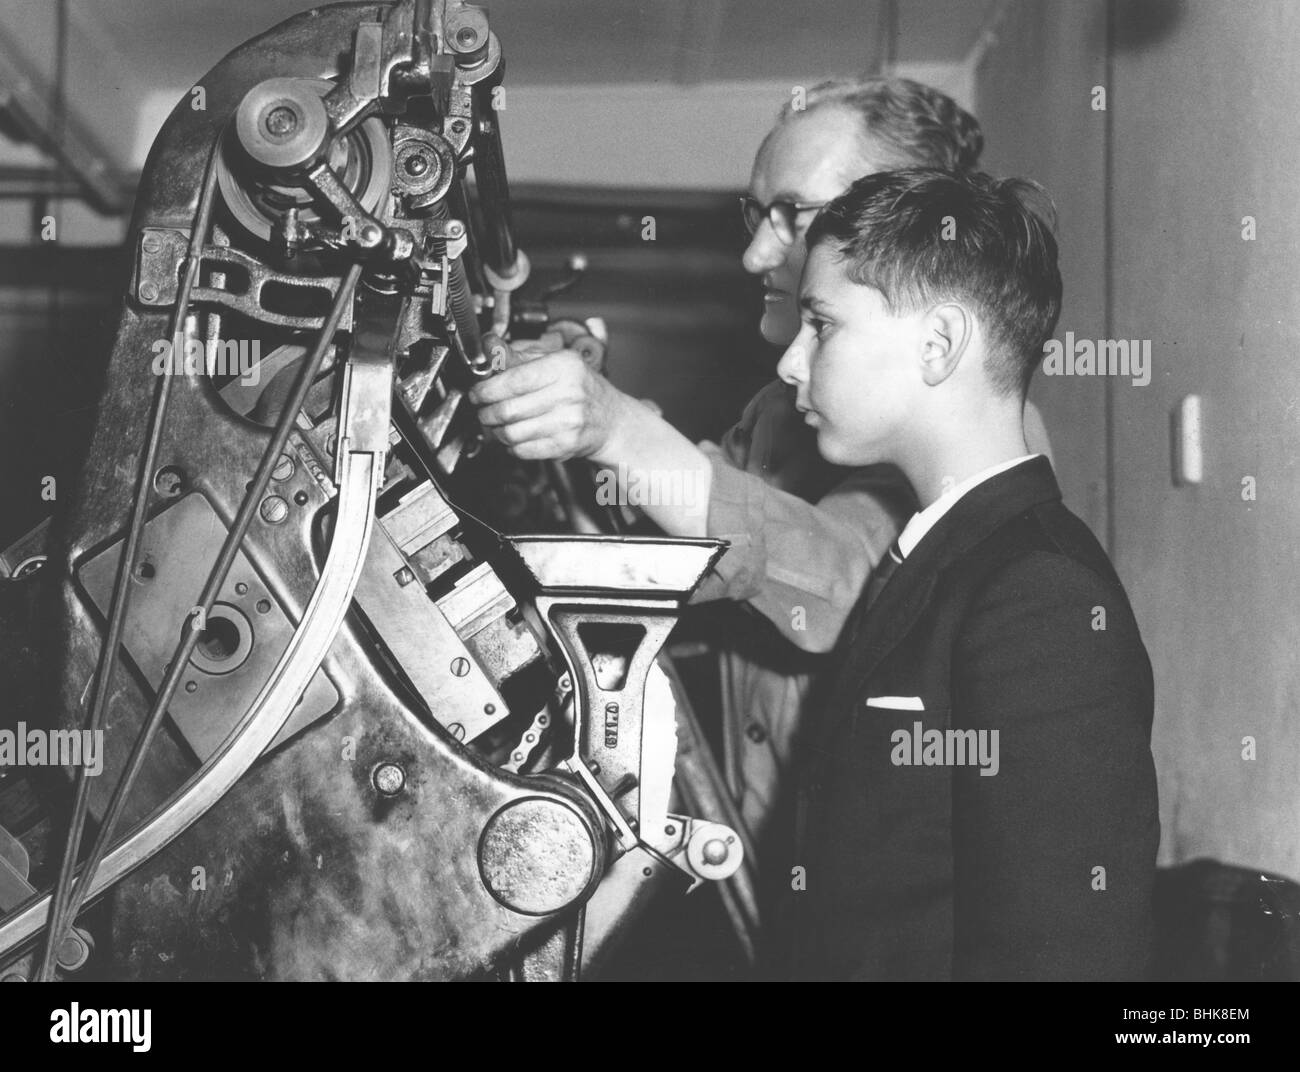 David Reiss inspects a linotype machine at the Jewish Chronicle, London, 1960. Artist: EH Emanuel - Stock Image